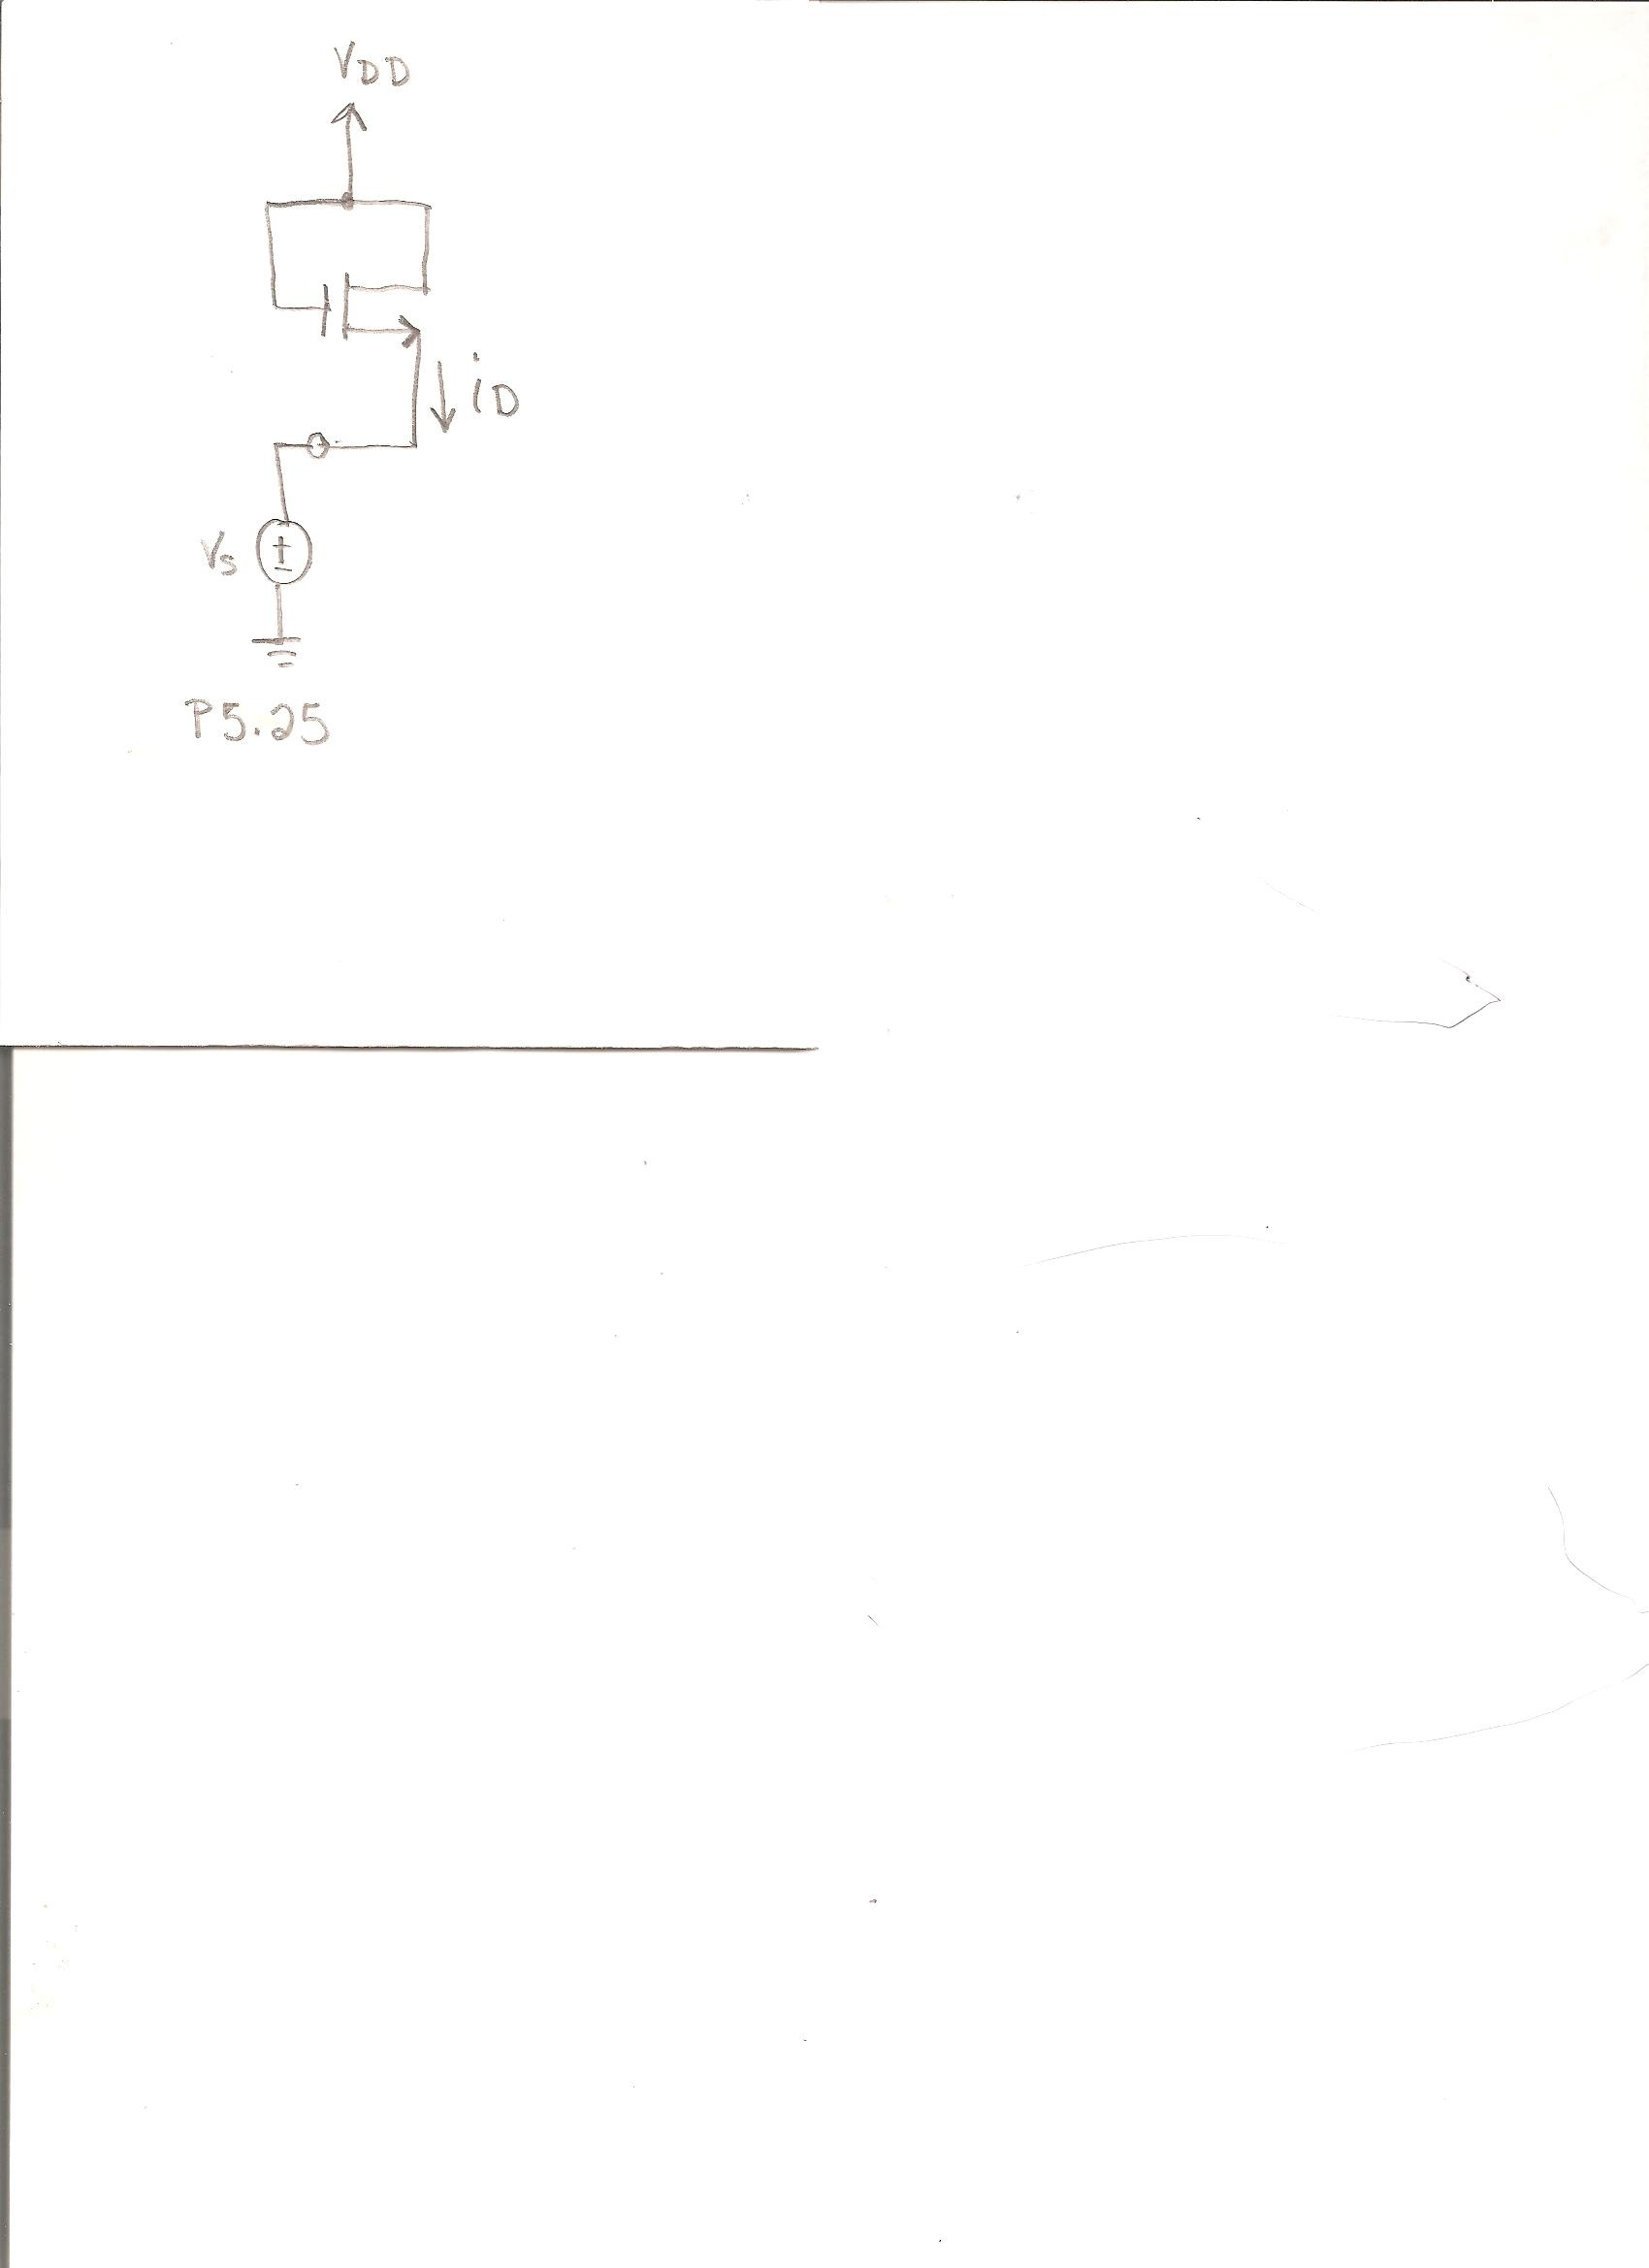 For the circuit attached in figure P5.25, sketch i